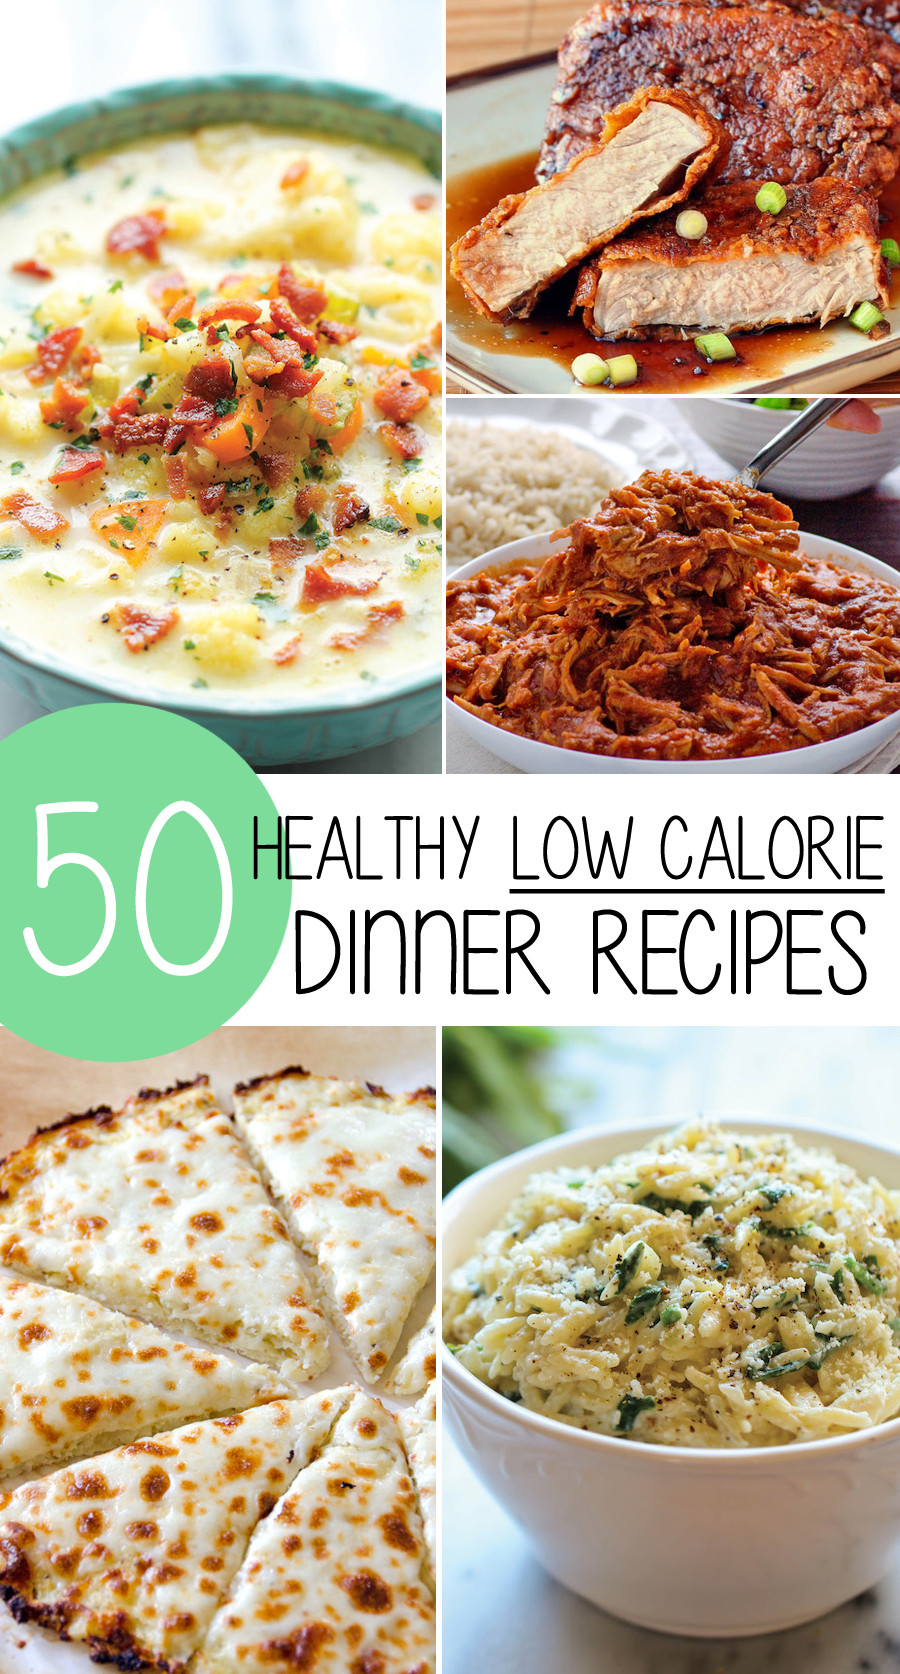 Healthy Recipes For Weight Loss  50 Healthy Low Calorie Weight Loss Dinner Recipes